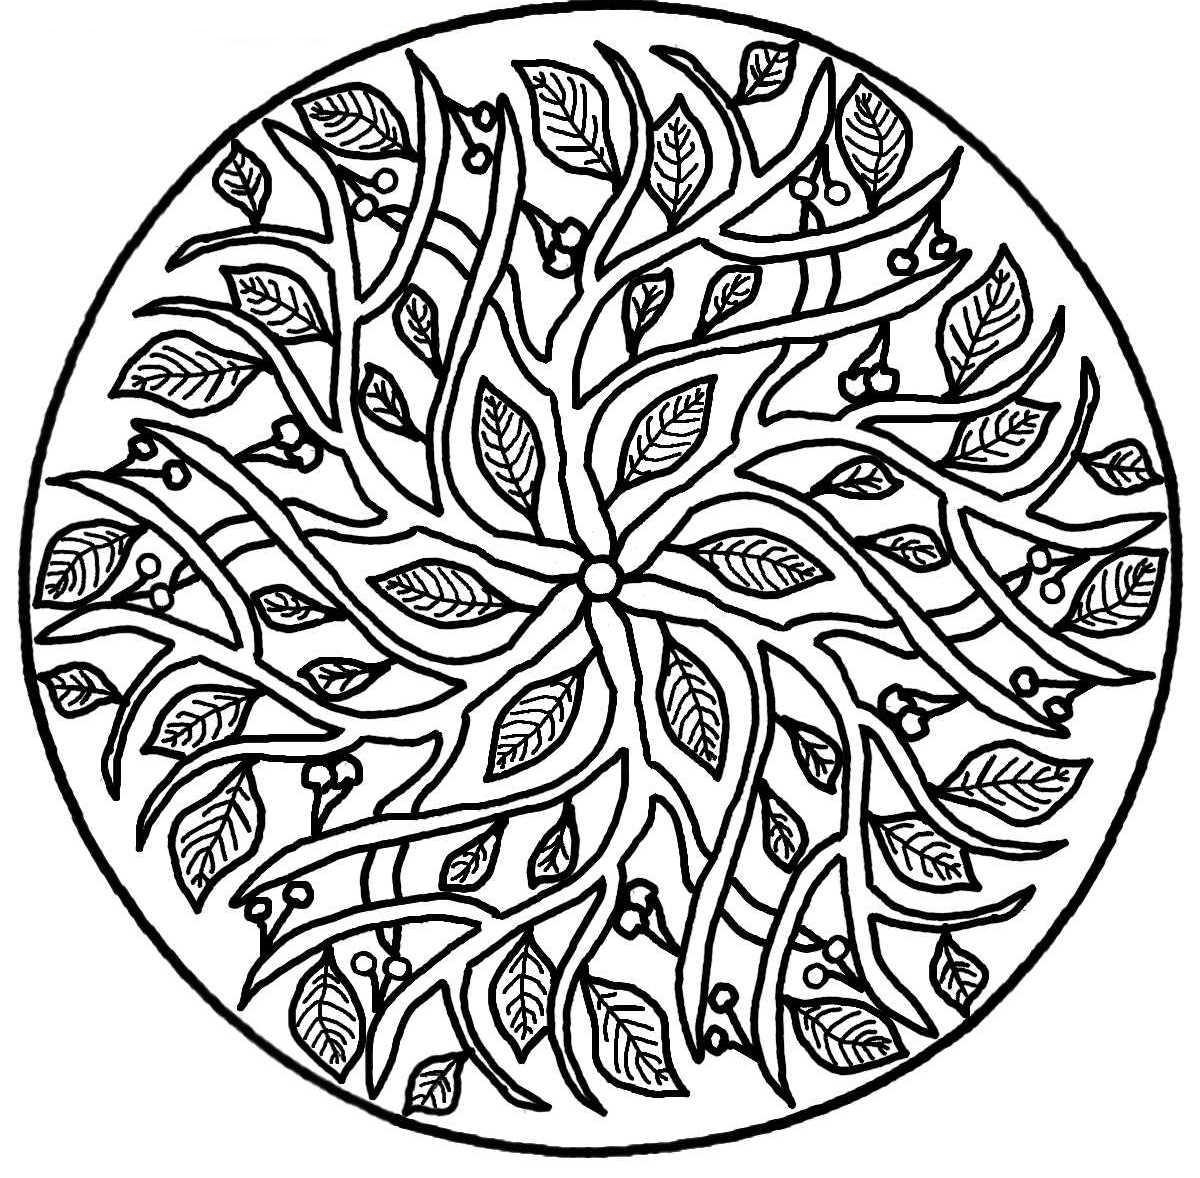 Marvelous Mandala Coloring Pages the Arts Printable Line Download Of Modern Intricate Mandala Coloring Pages Coloring for Good Mandala to Print